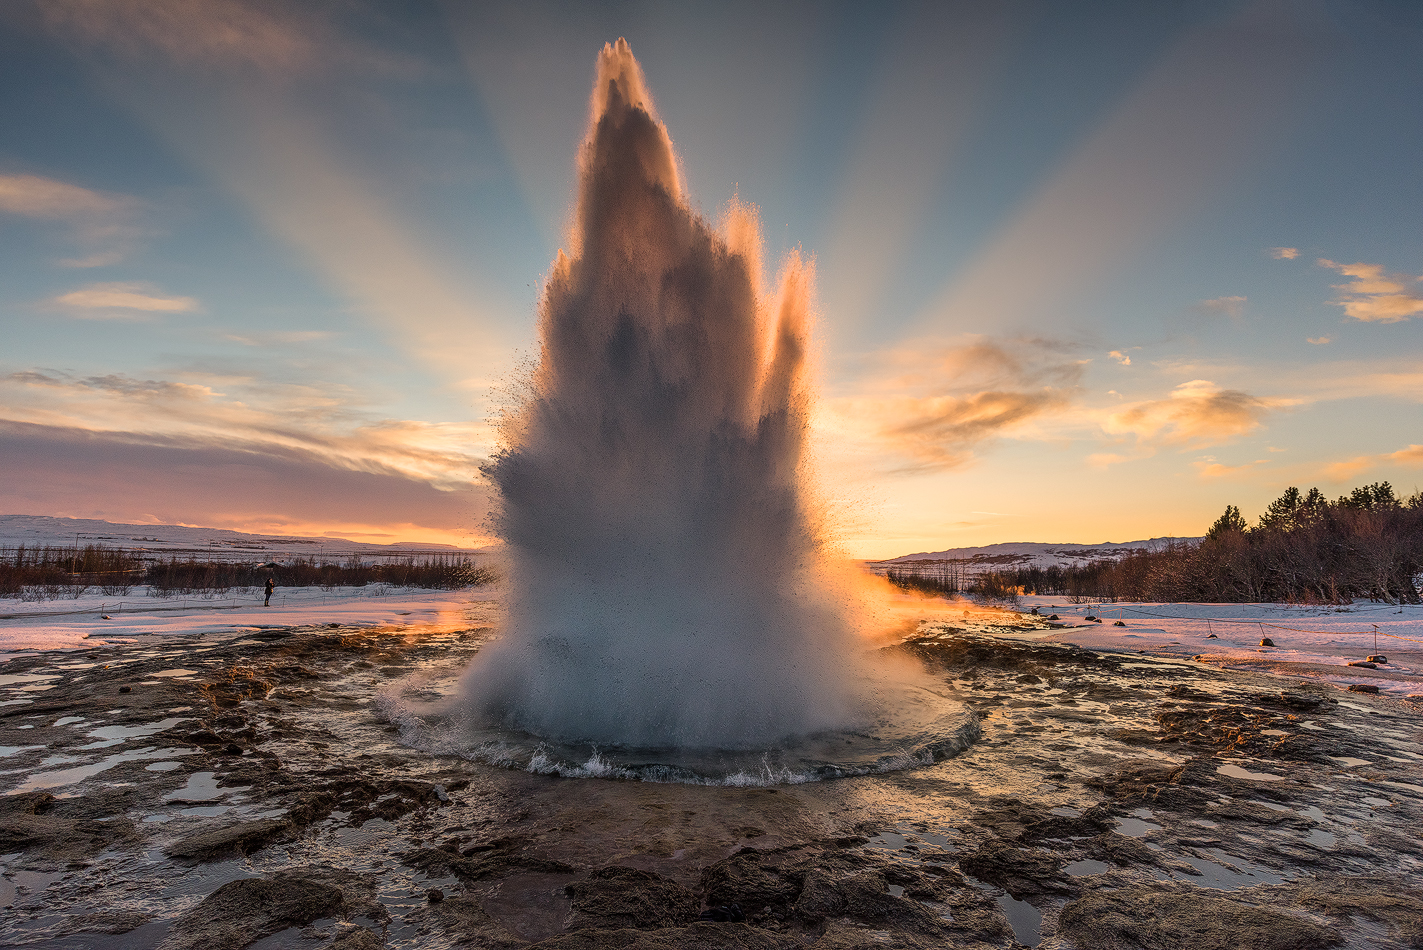 The impressive Strokkur geyser on the Golden Circle route erupting.